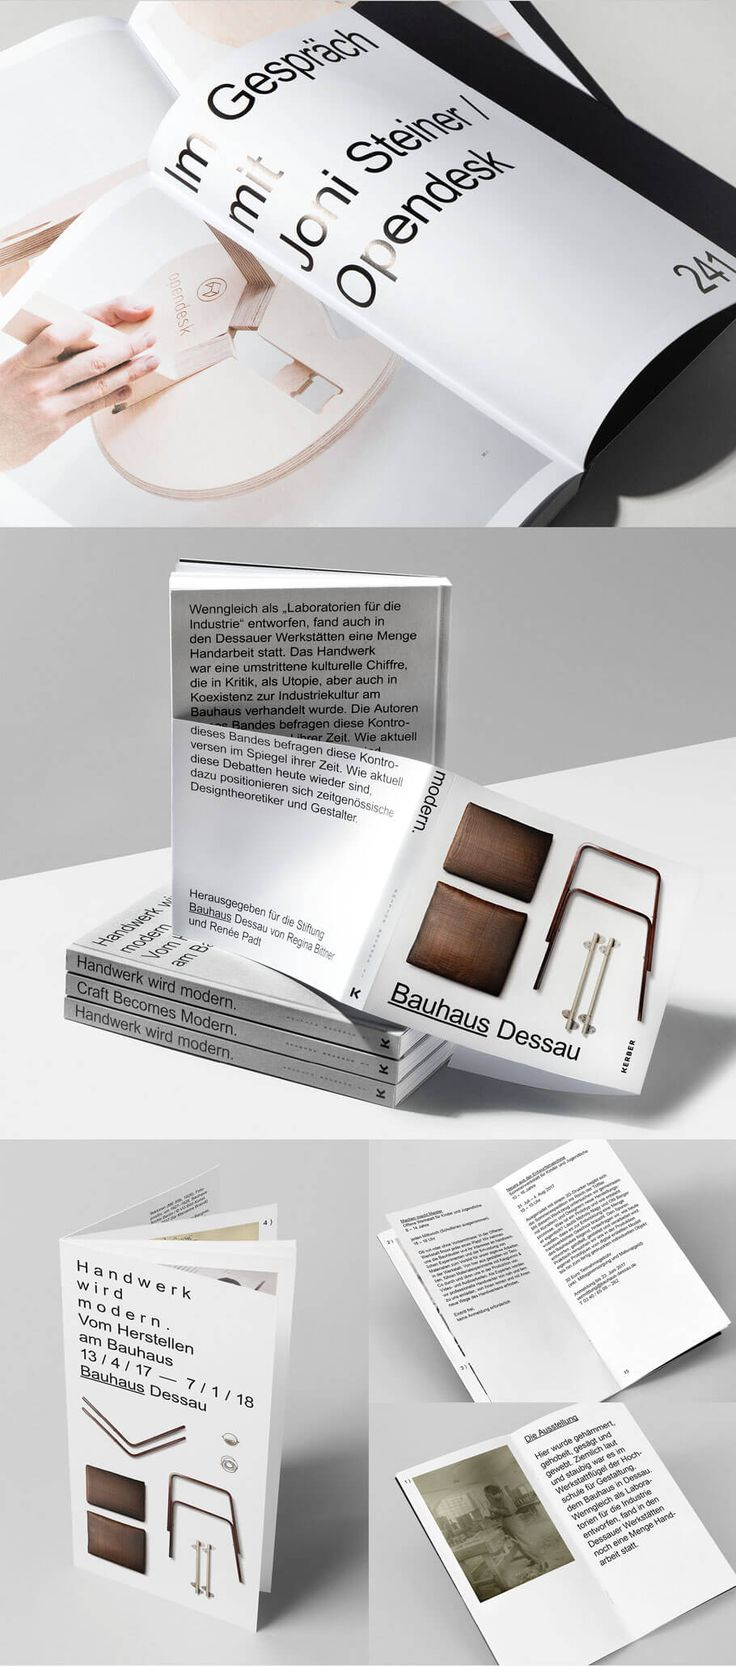 546 best Editorial / Typography images on Pinterest | Typography ...